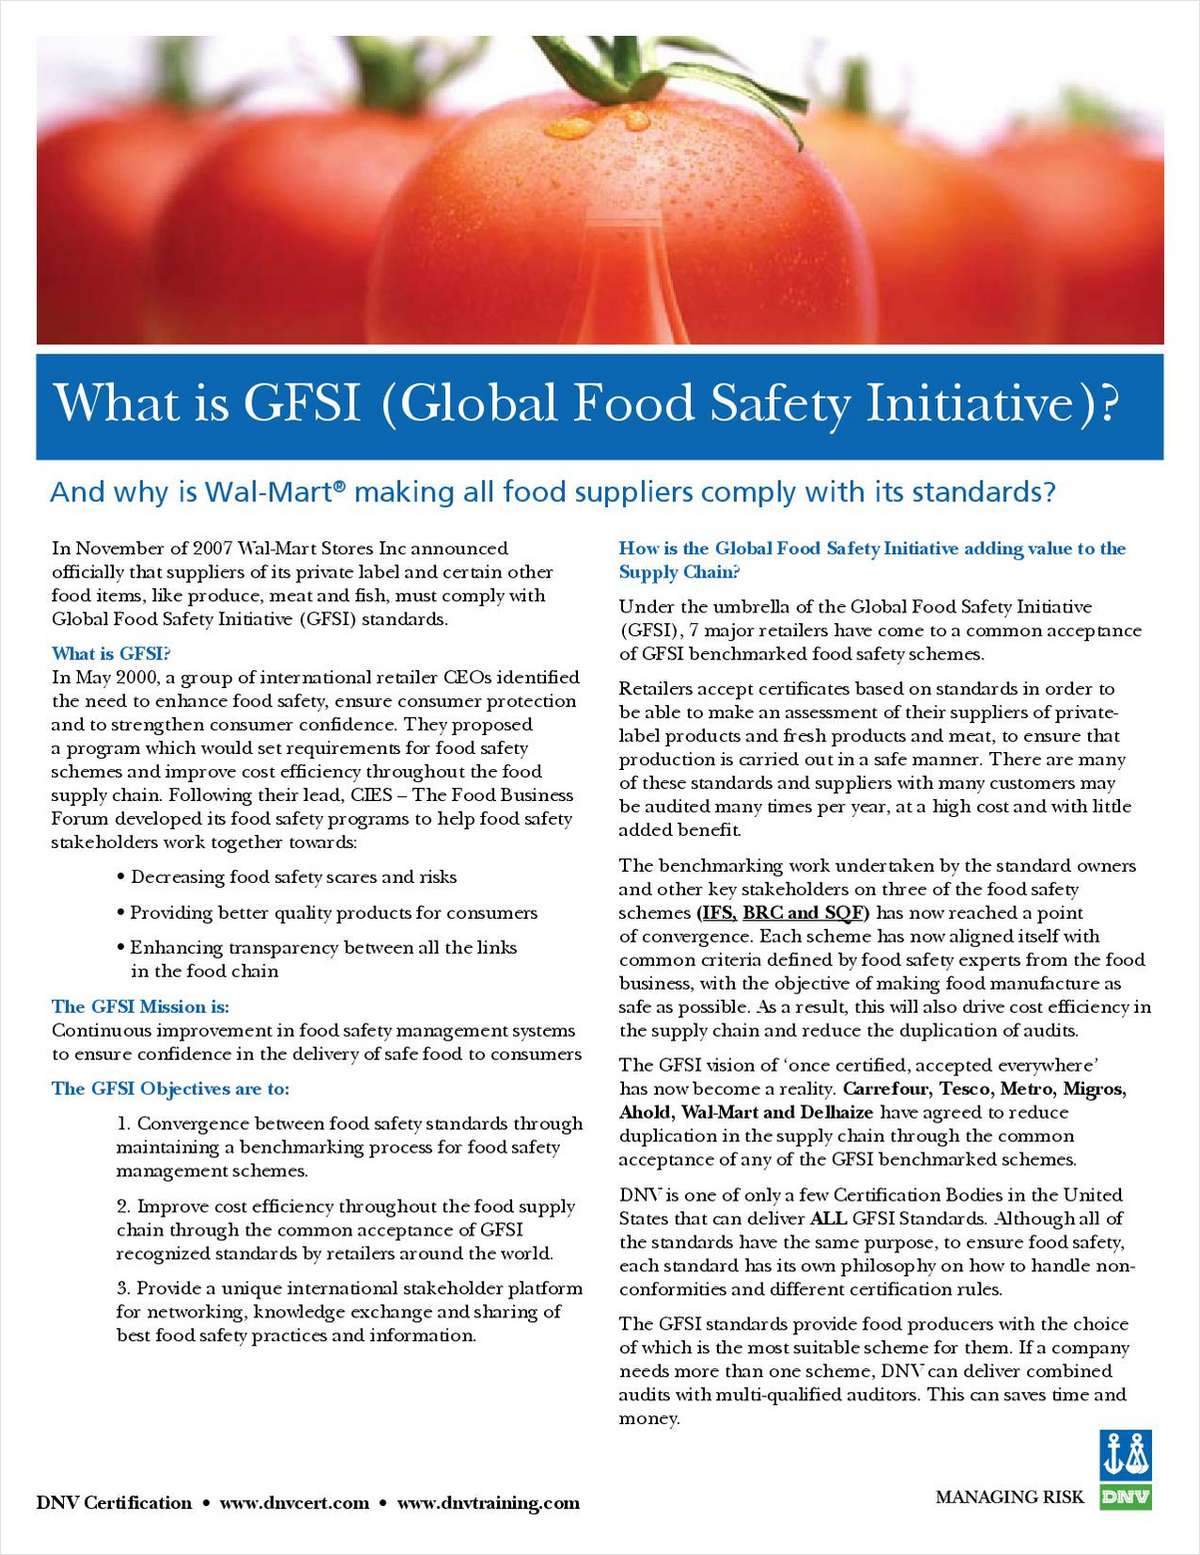 What Is GFSI And Why Are Major U.S. Retailers Making Food Suppliers Comply With It's Standards?